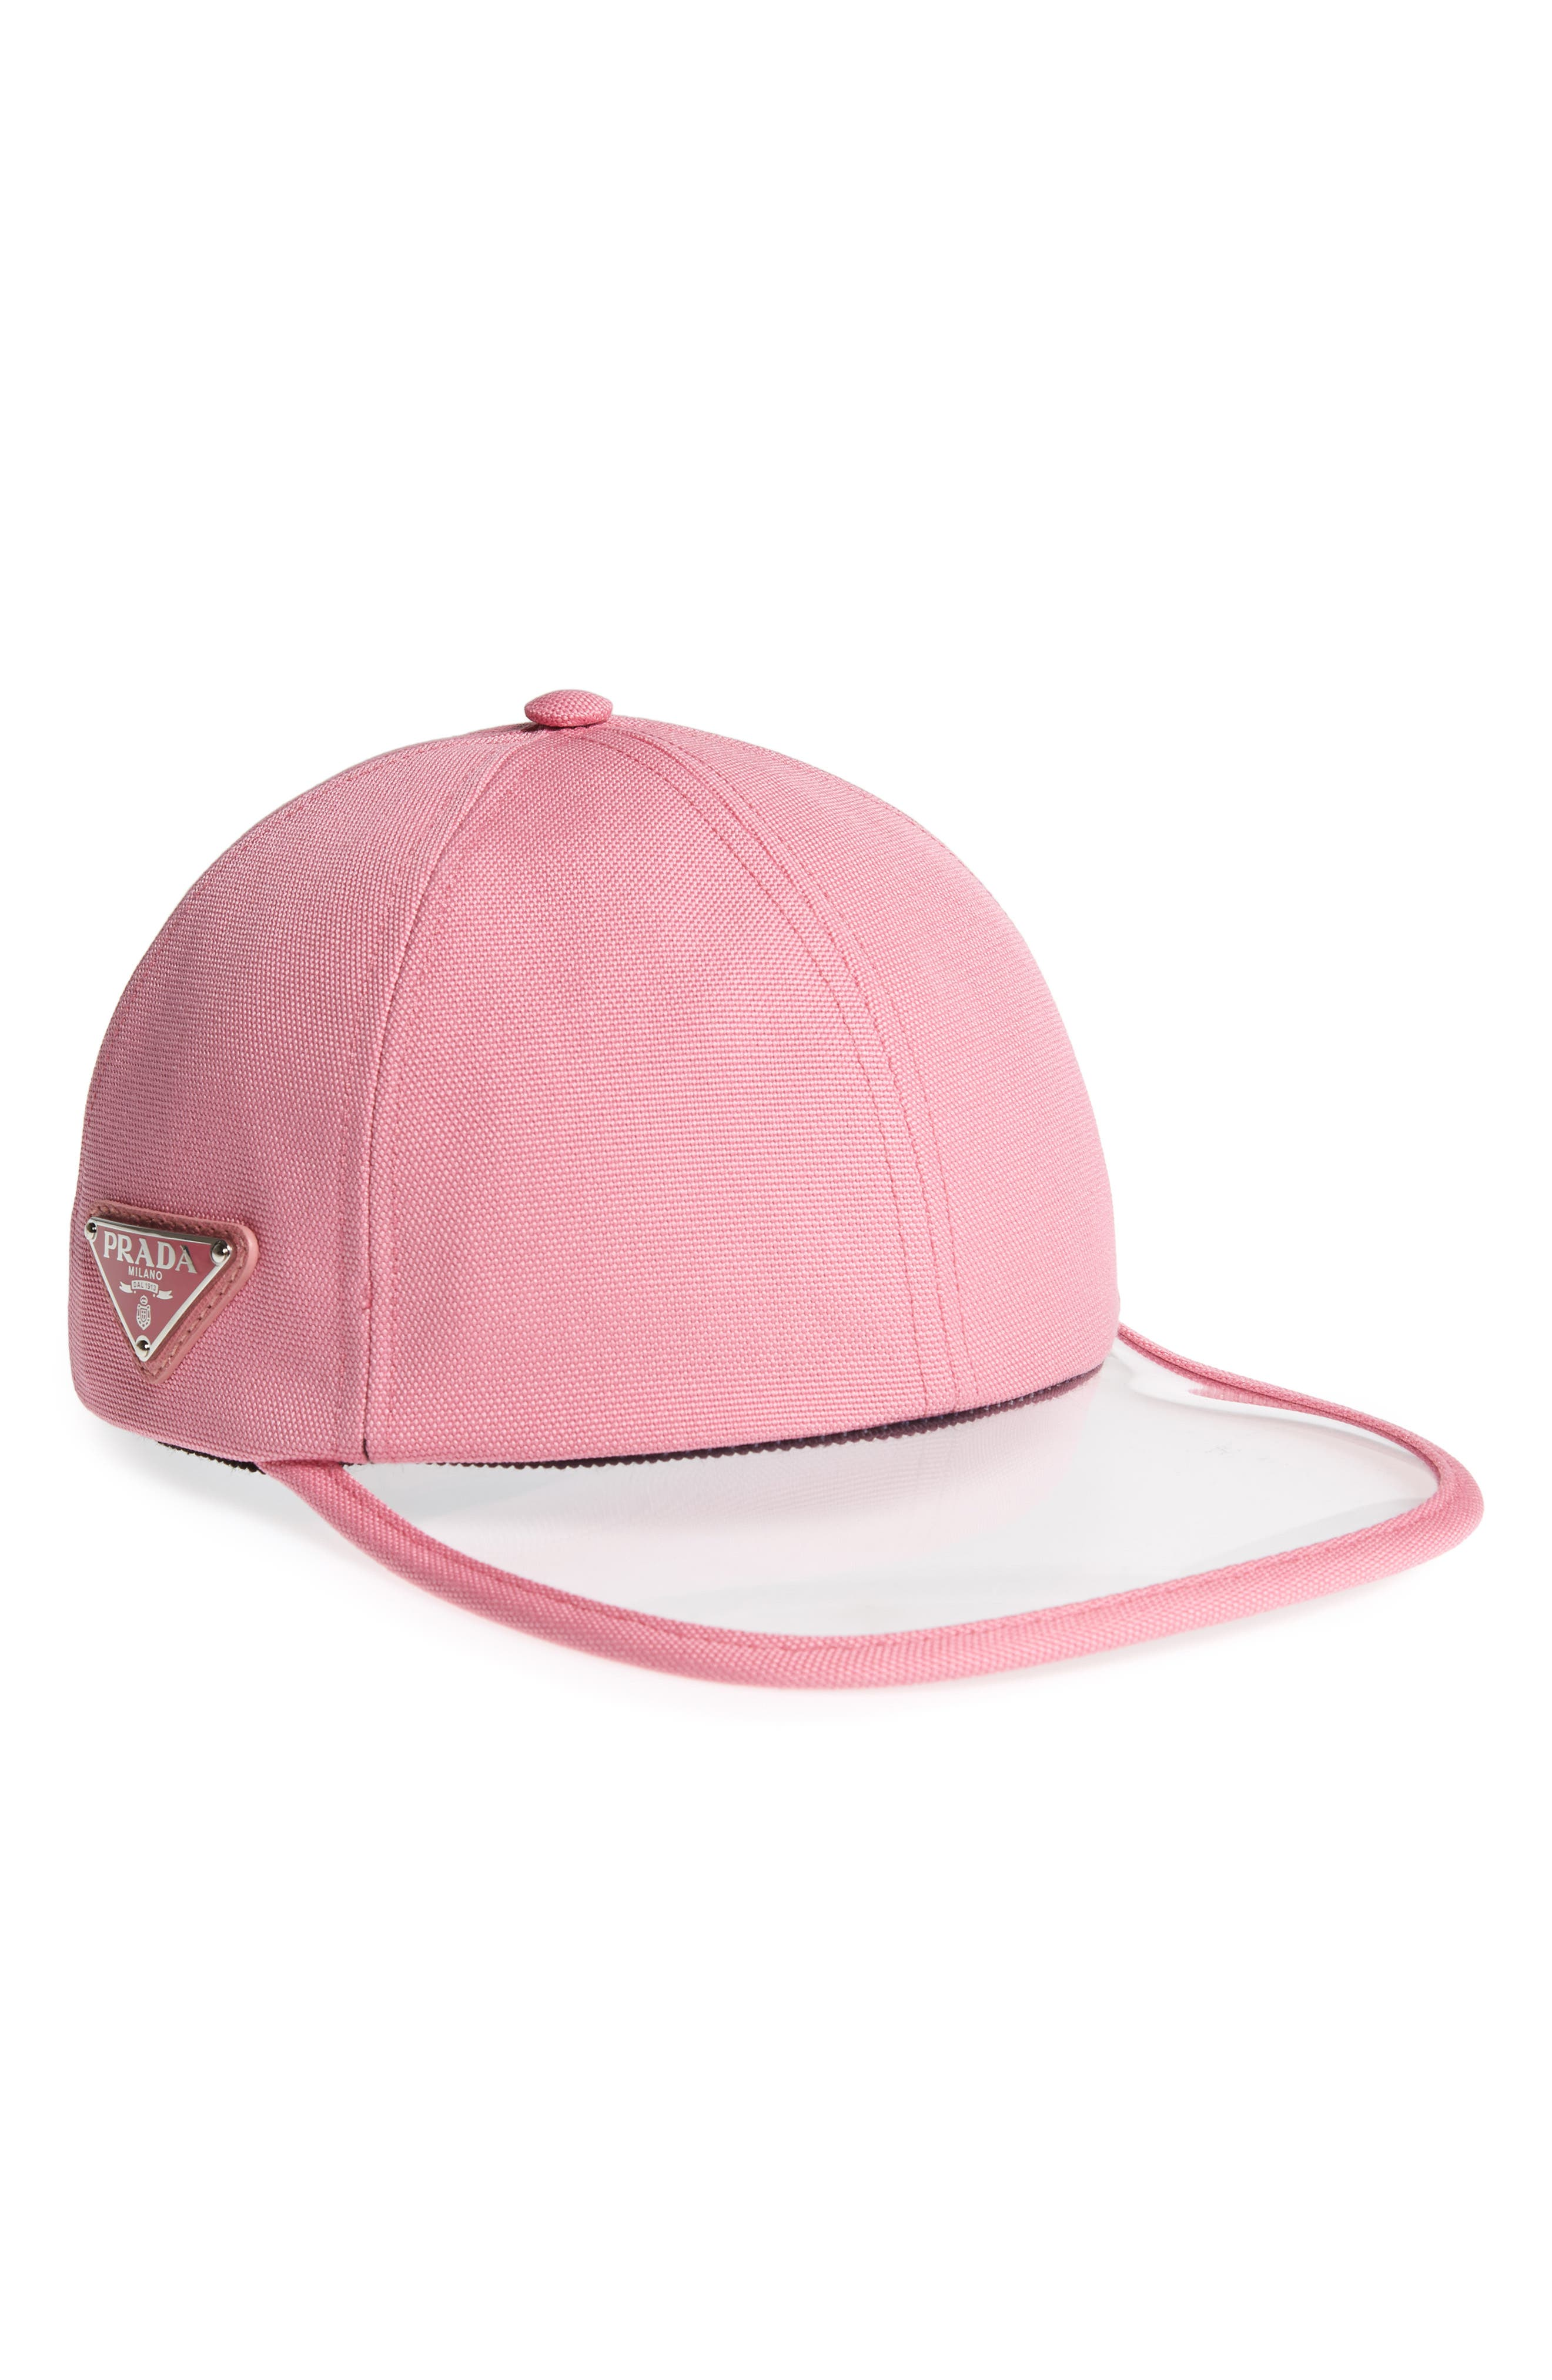 56f3b94a66a Prada Hats for Women